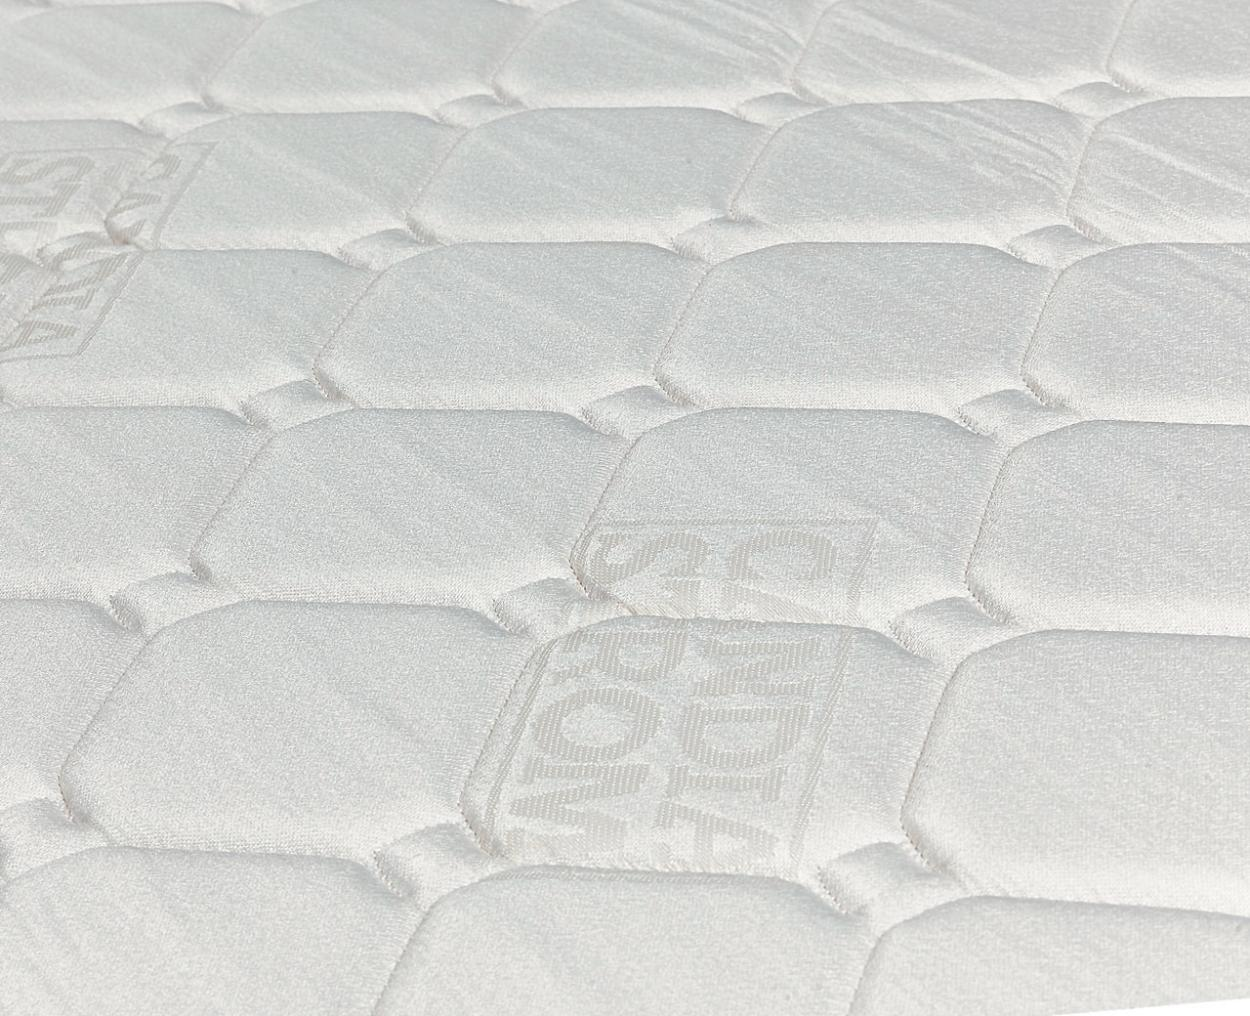 CandiaStrom - Mattress AURA - CLASSIC COLLECTION - Details